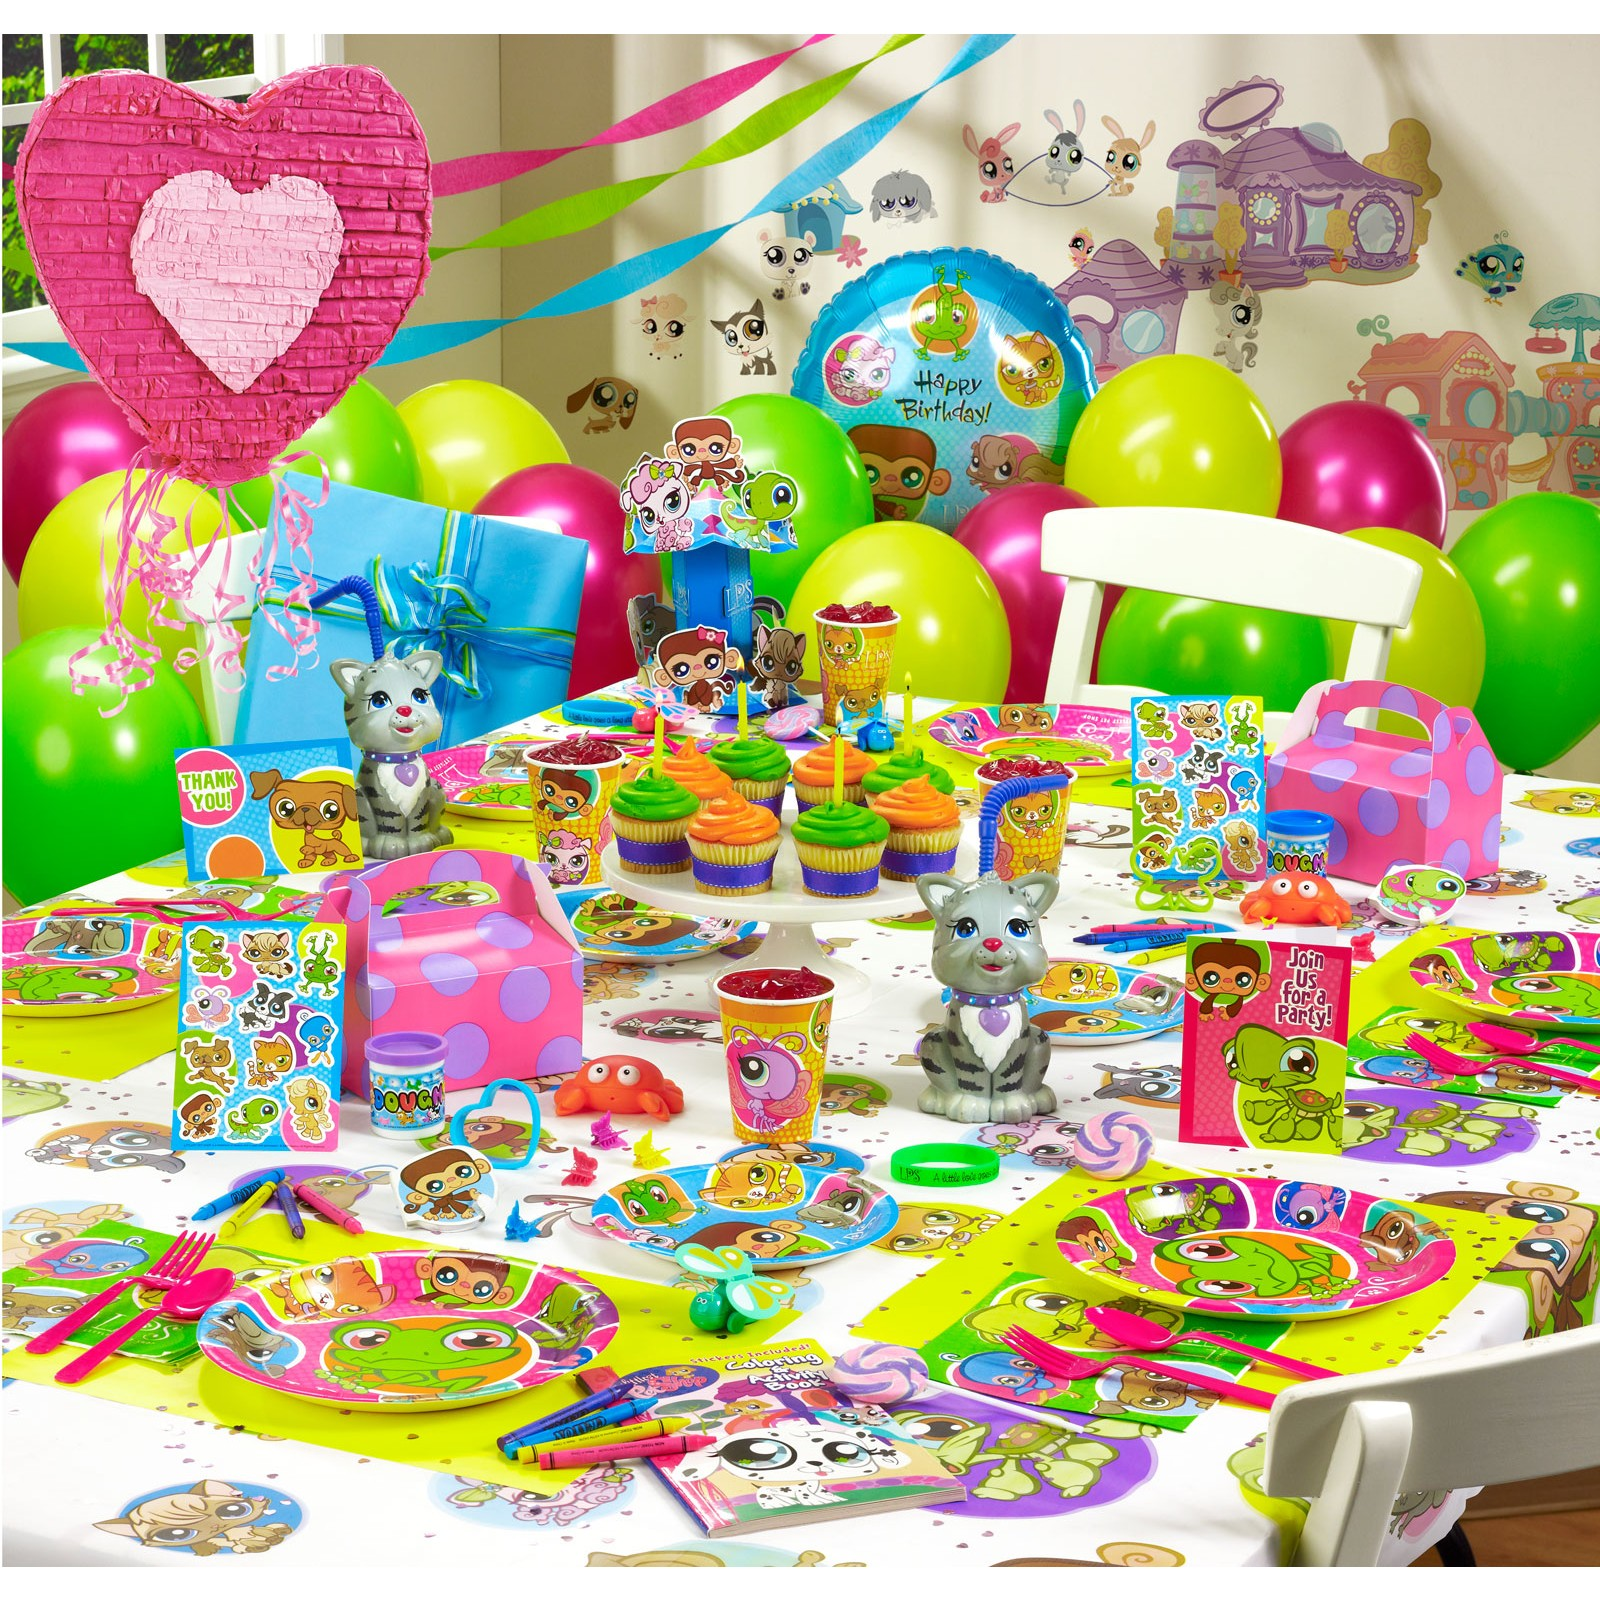 Decoraci n de fiestas infantiles de littlest pet shop for Imagenes de decoracion de fiestas infantiles